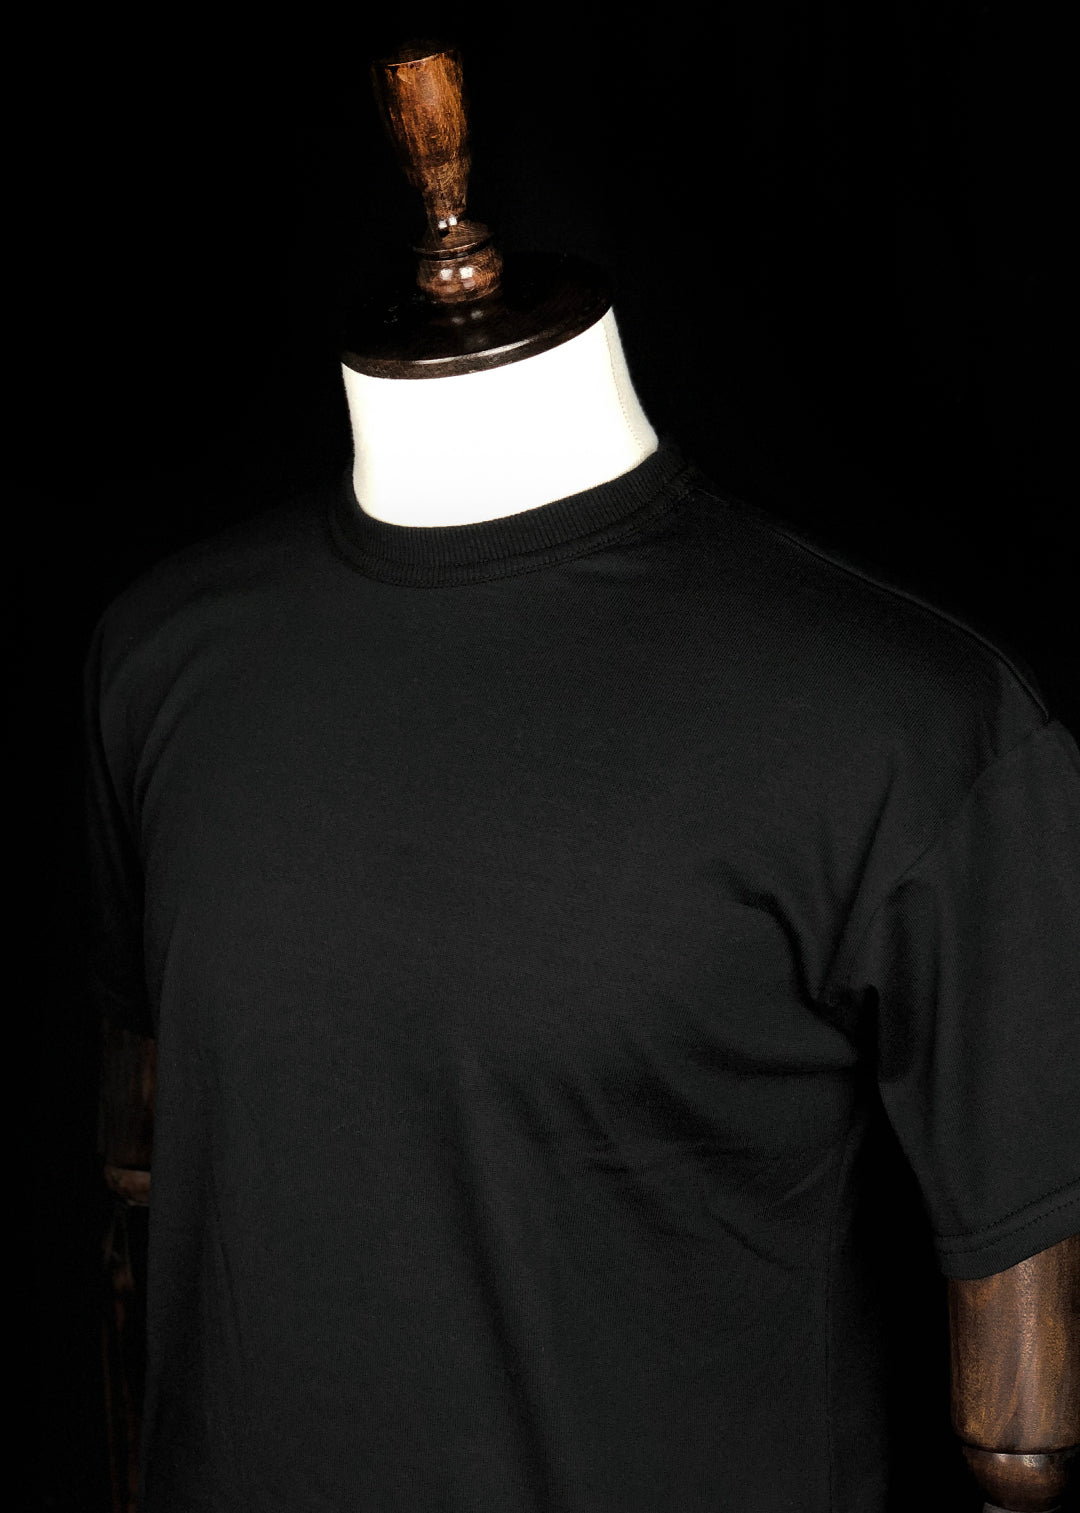 Basic T-shirt. Black